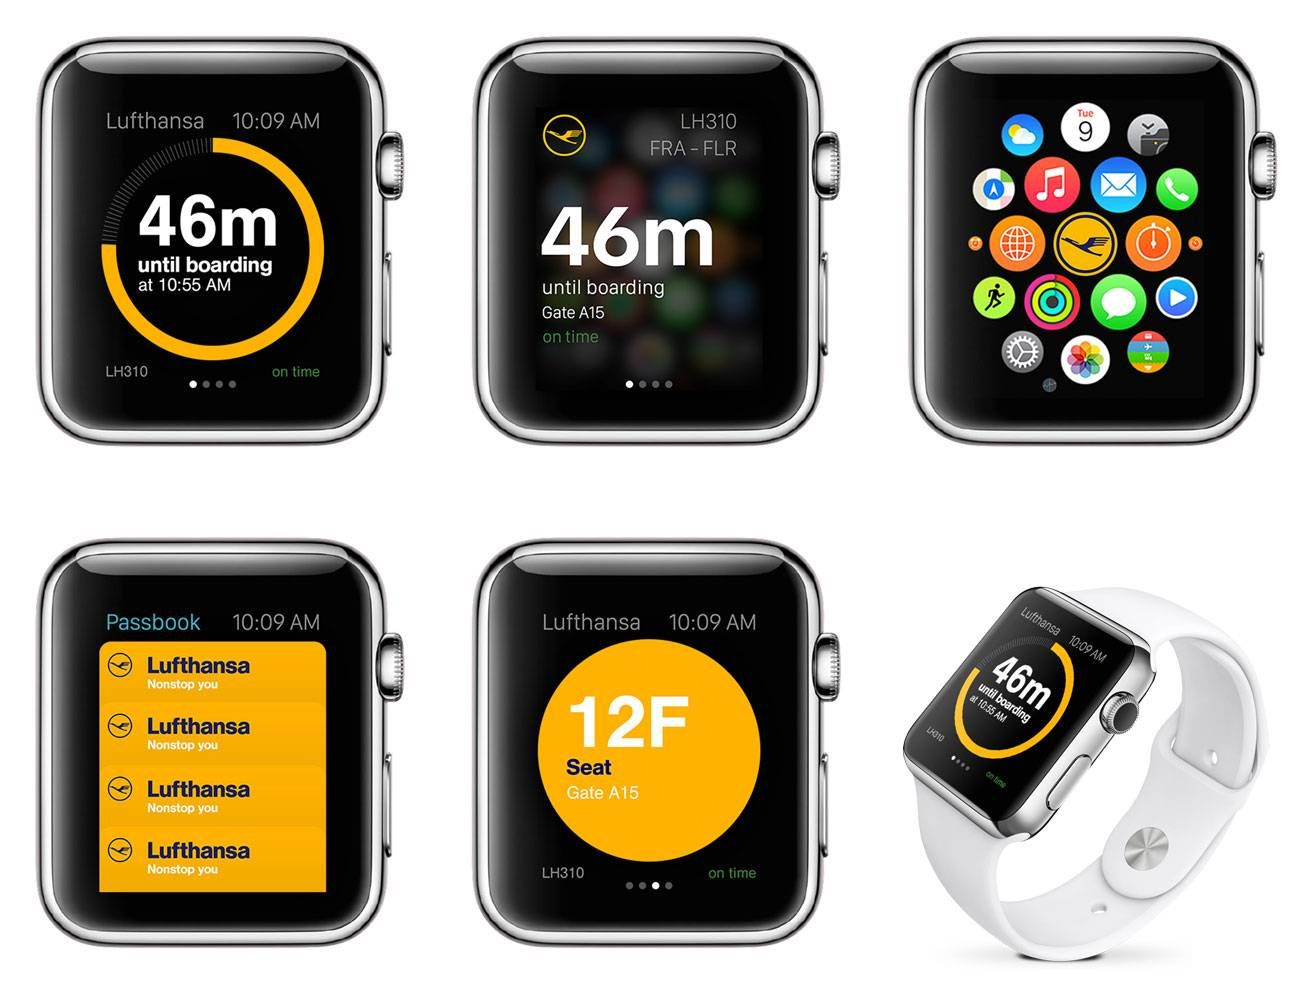 lufthansa apple watch